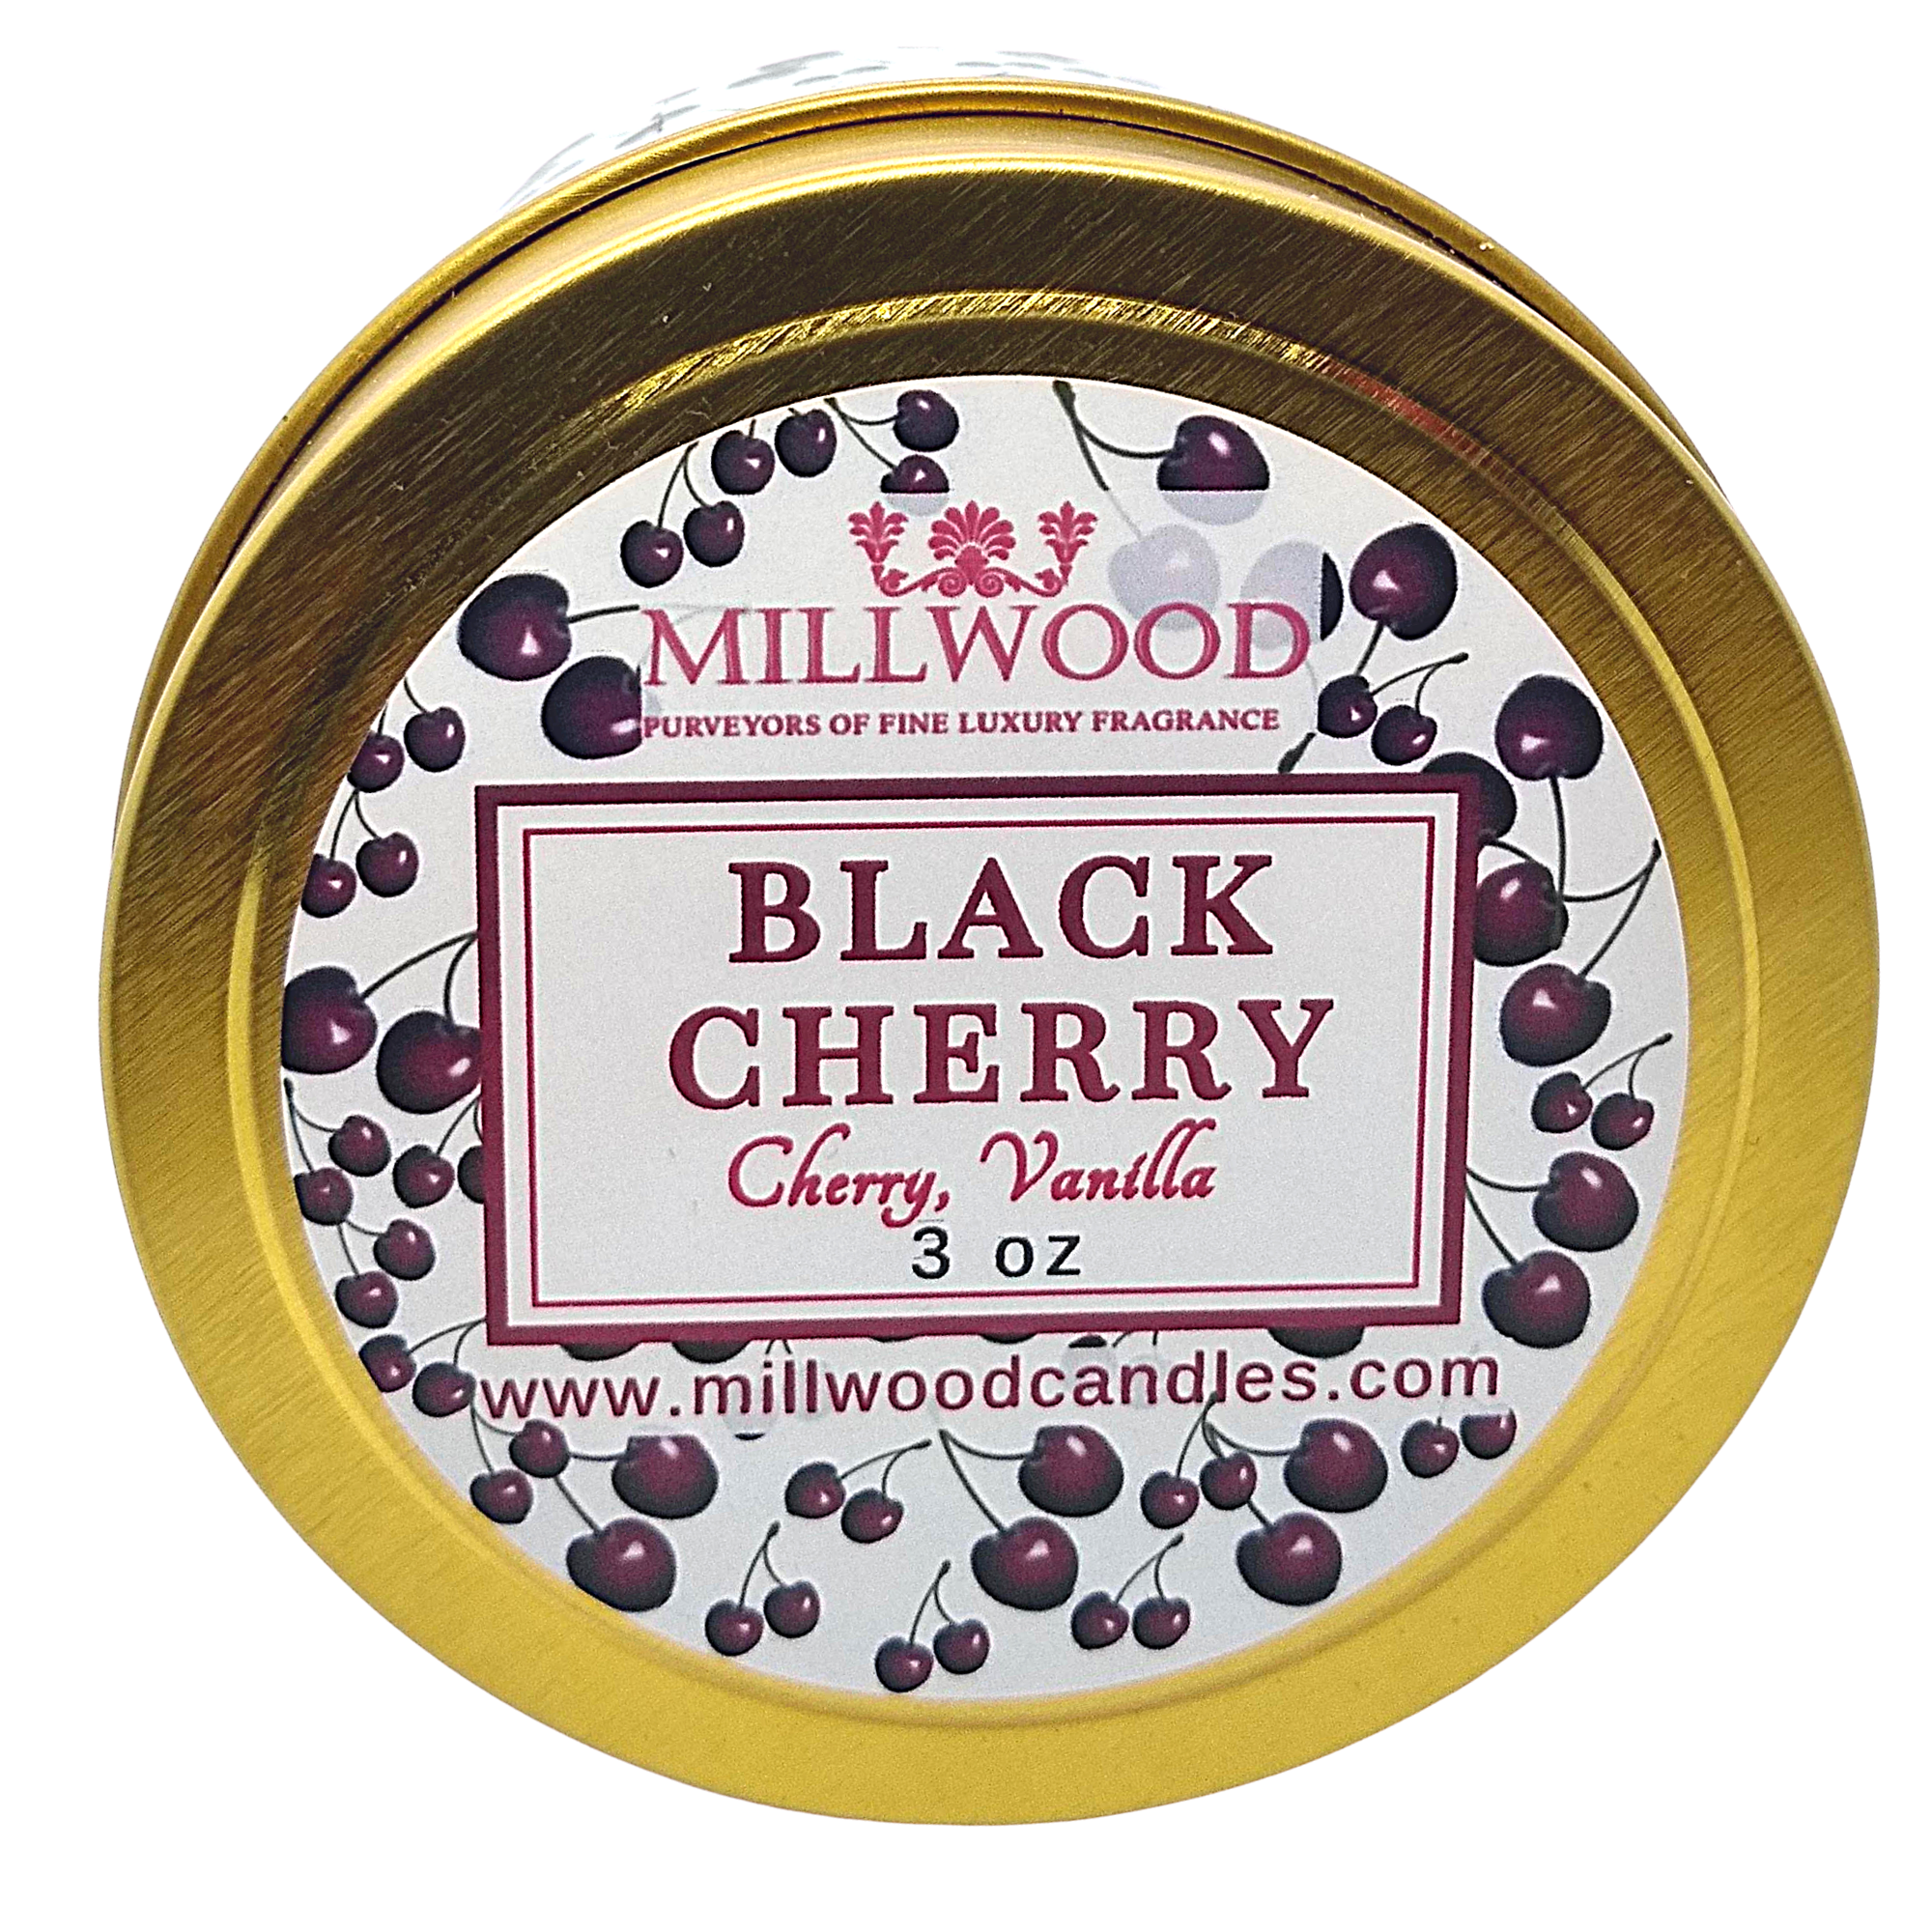 Black Cherry Soy Candle by Millwood Candles